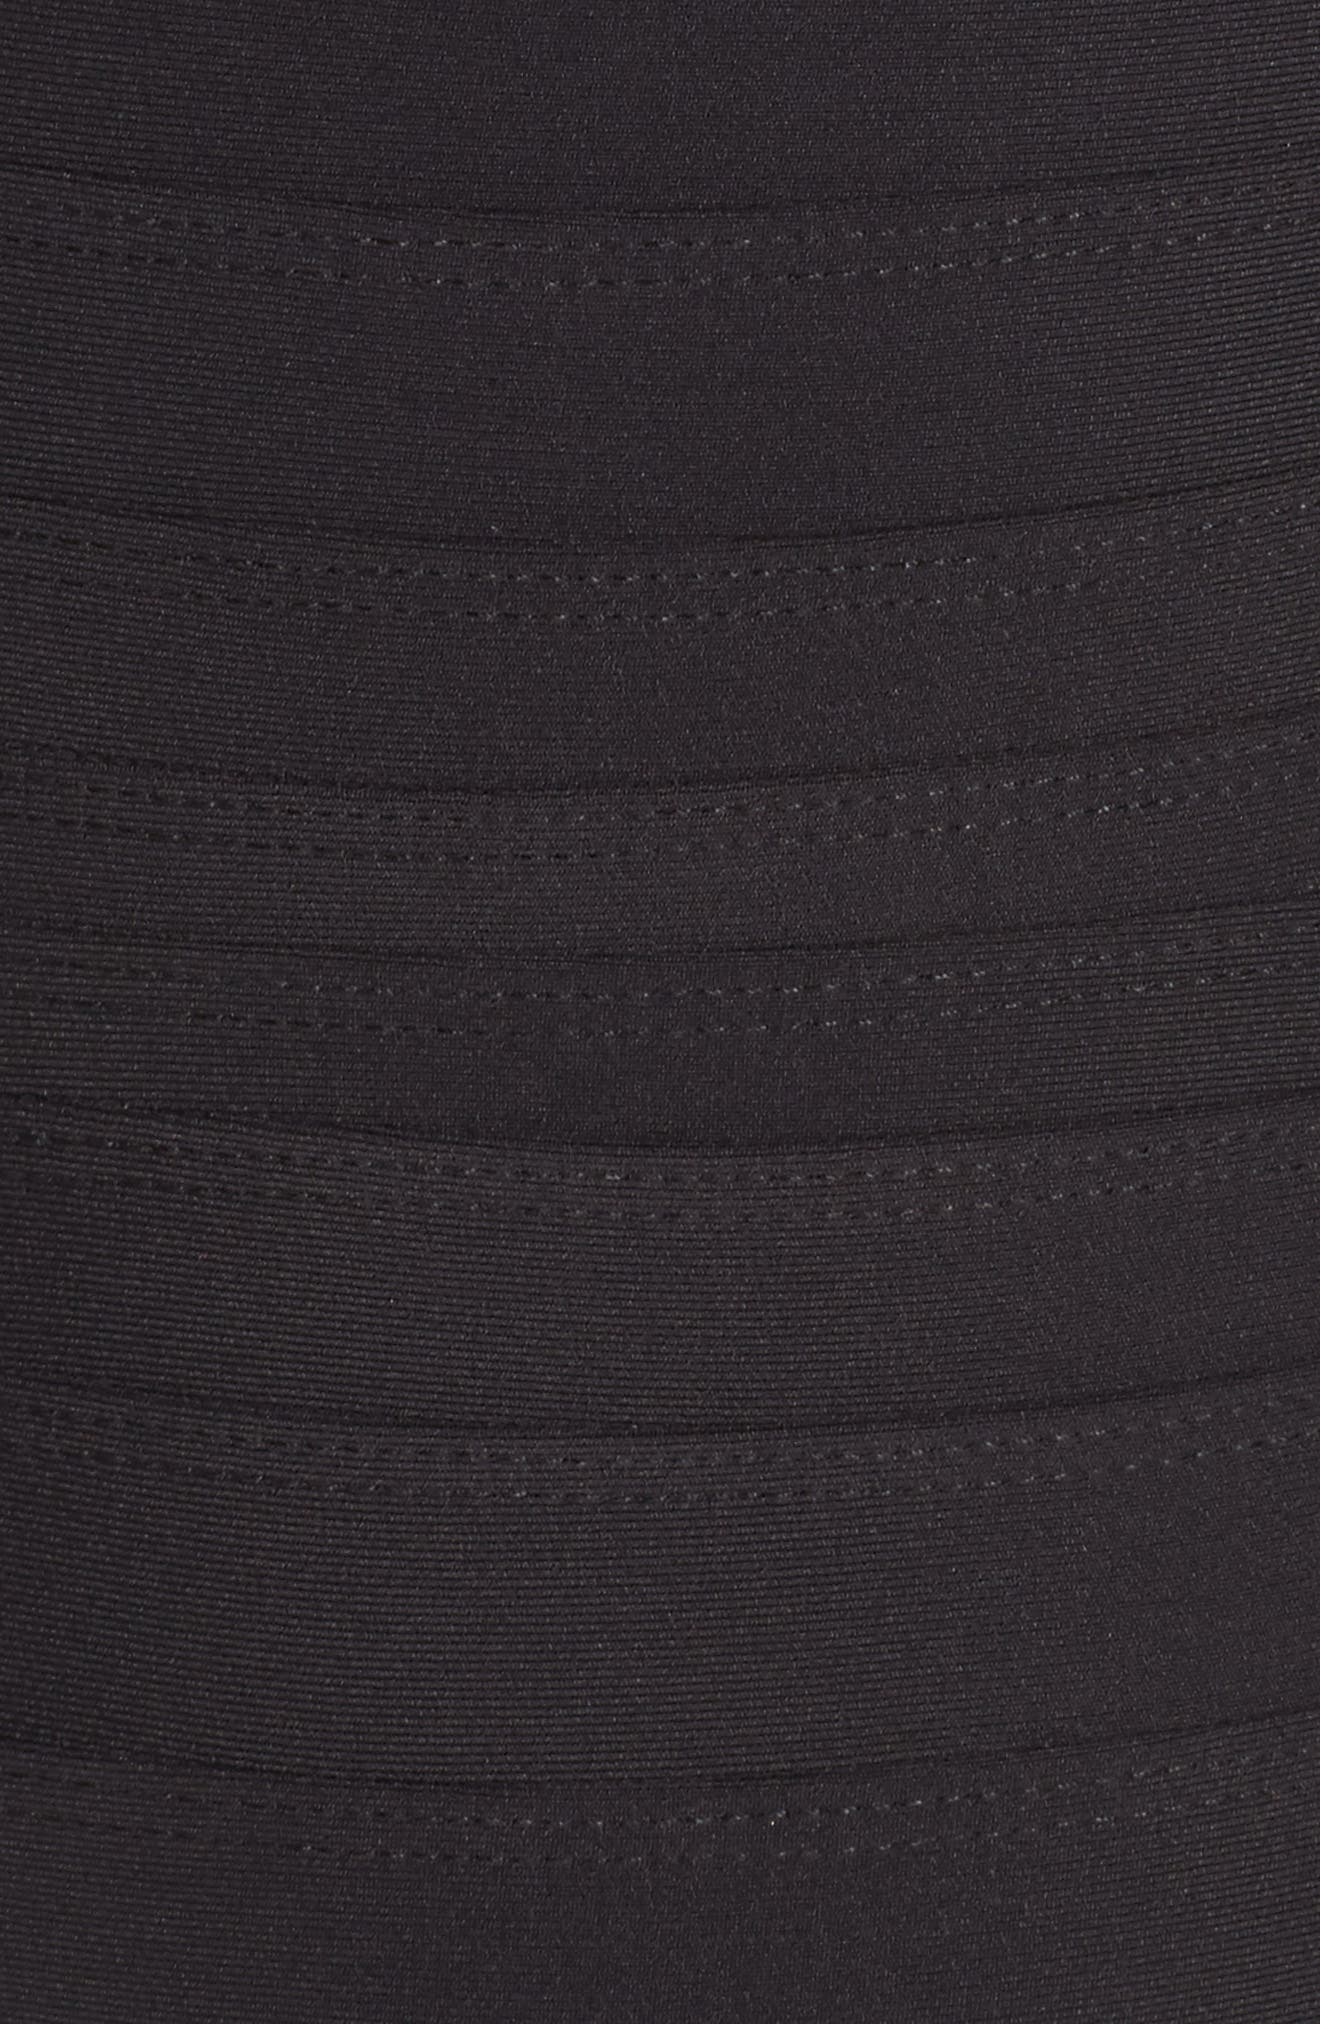 'Spectra' Banded Maillot,                             Alternate thumbnail 5, color,                             Black Tones